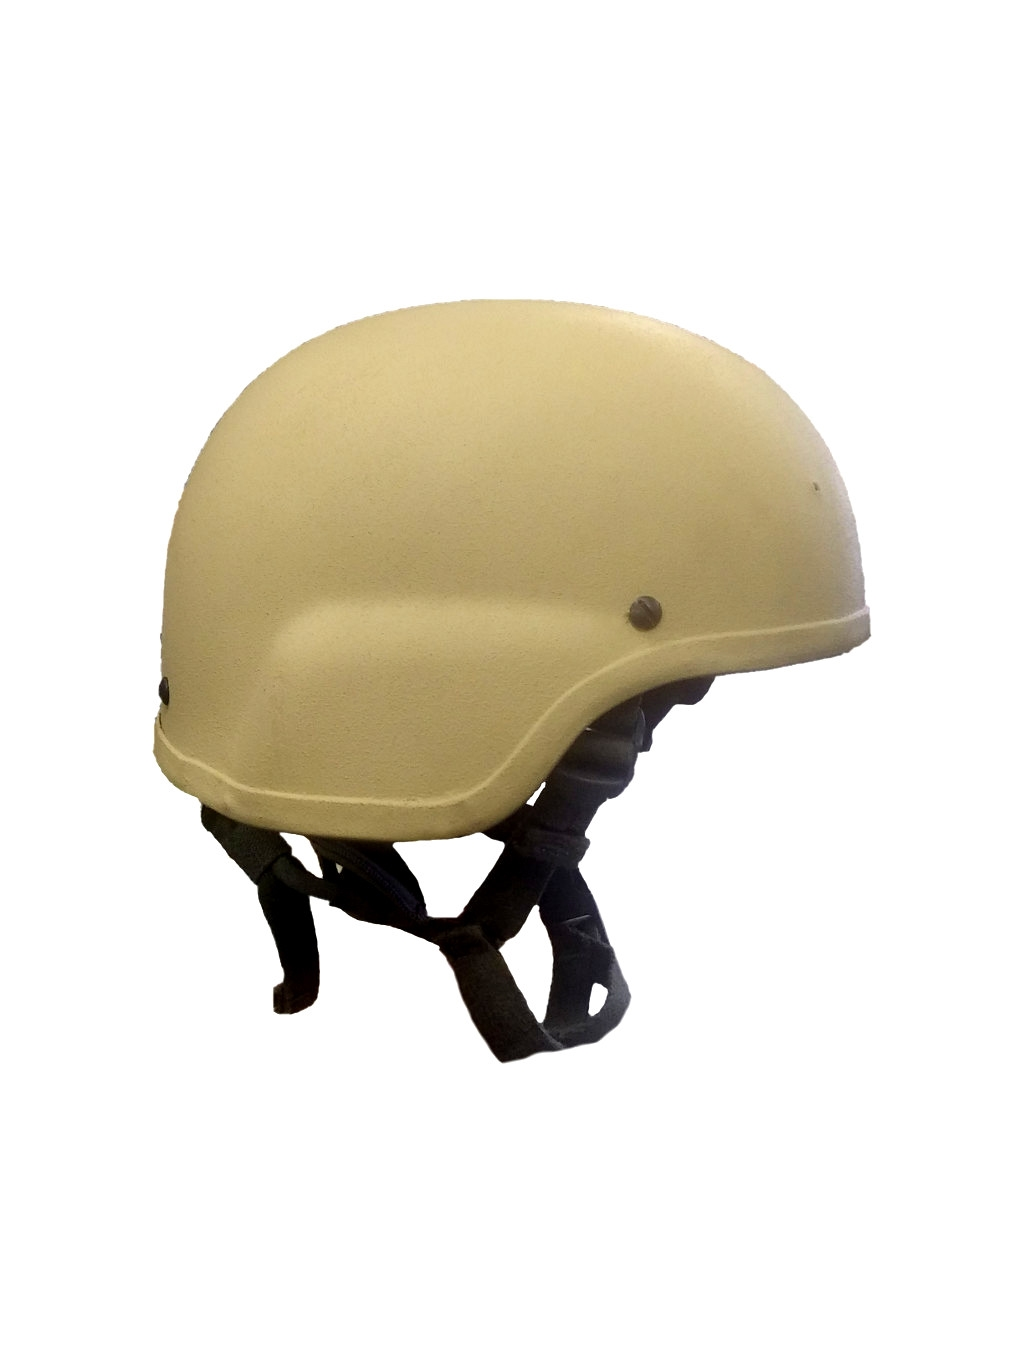 MSA TC 2000 Series Advanced Combat Helmet (ACH)